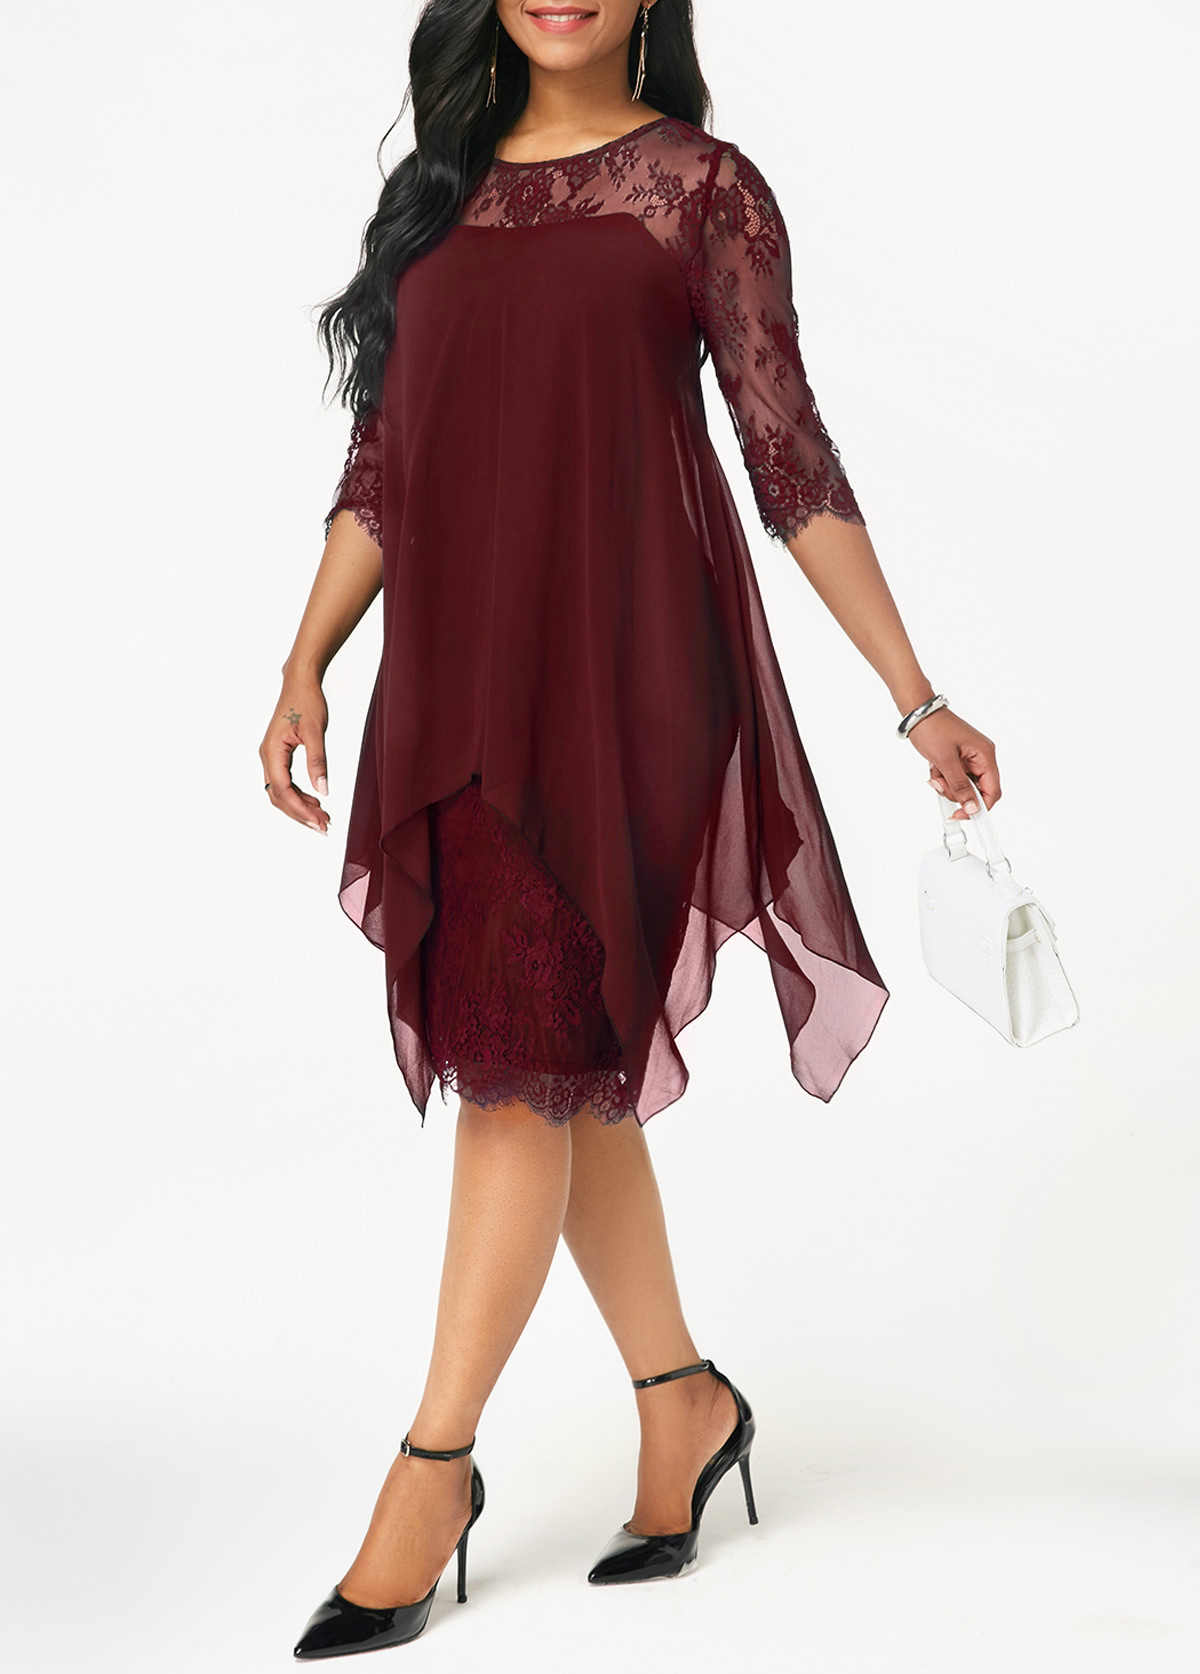 485ff1b4fae4d Chiffon Overlay Three Quarter Sleeve Dress. AddThis Sharing Buttons. Share  to Facebook Share to Pinterest